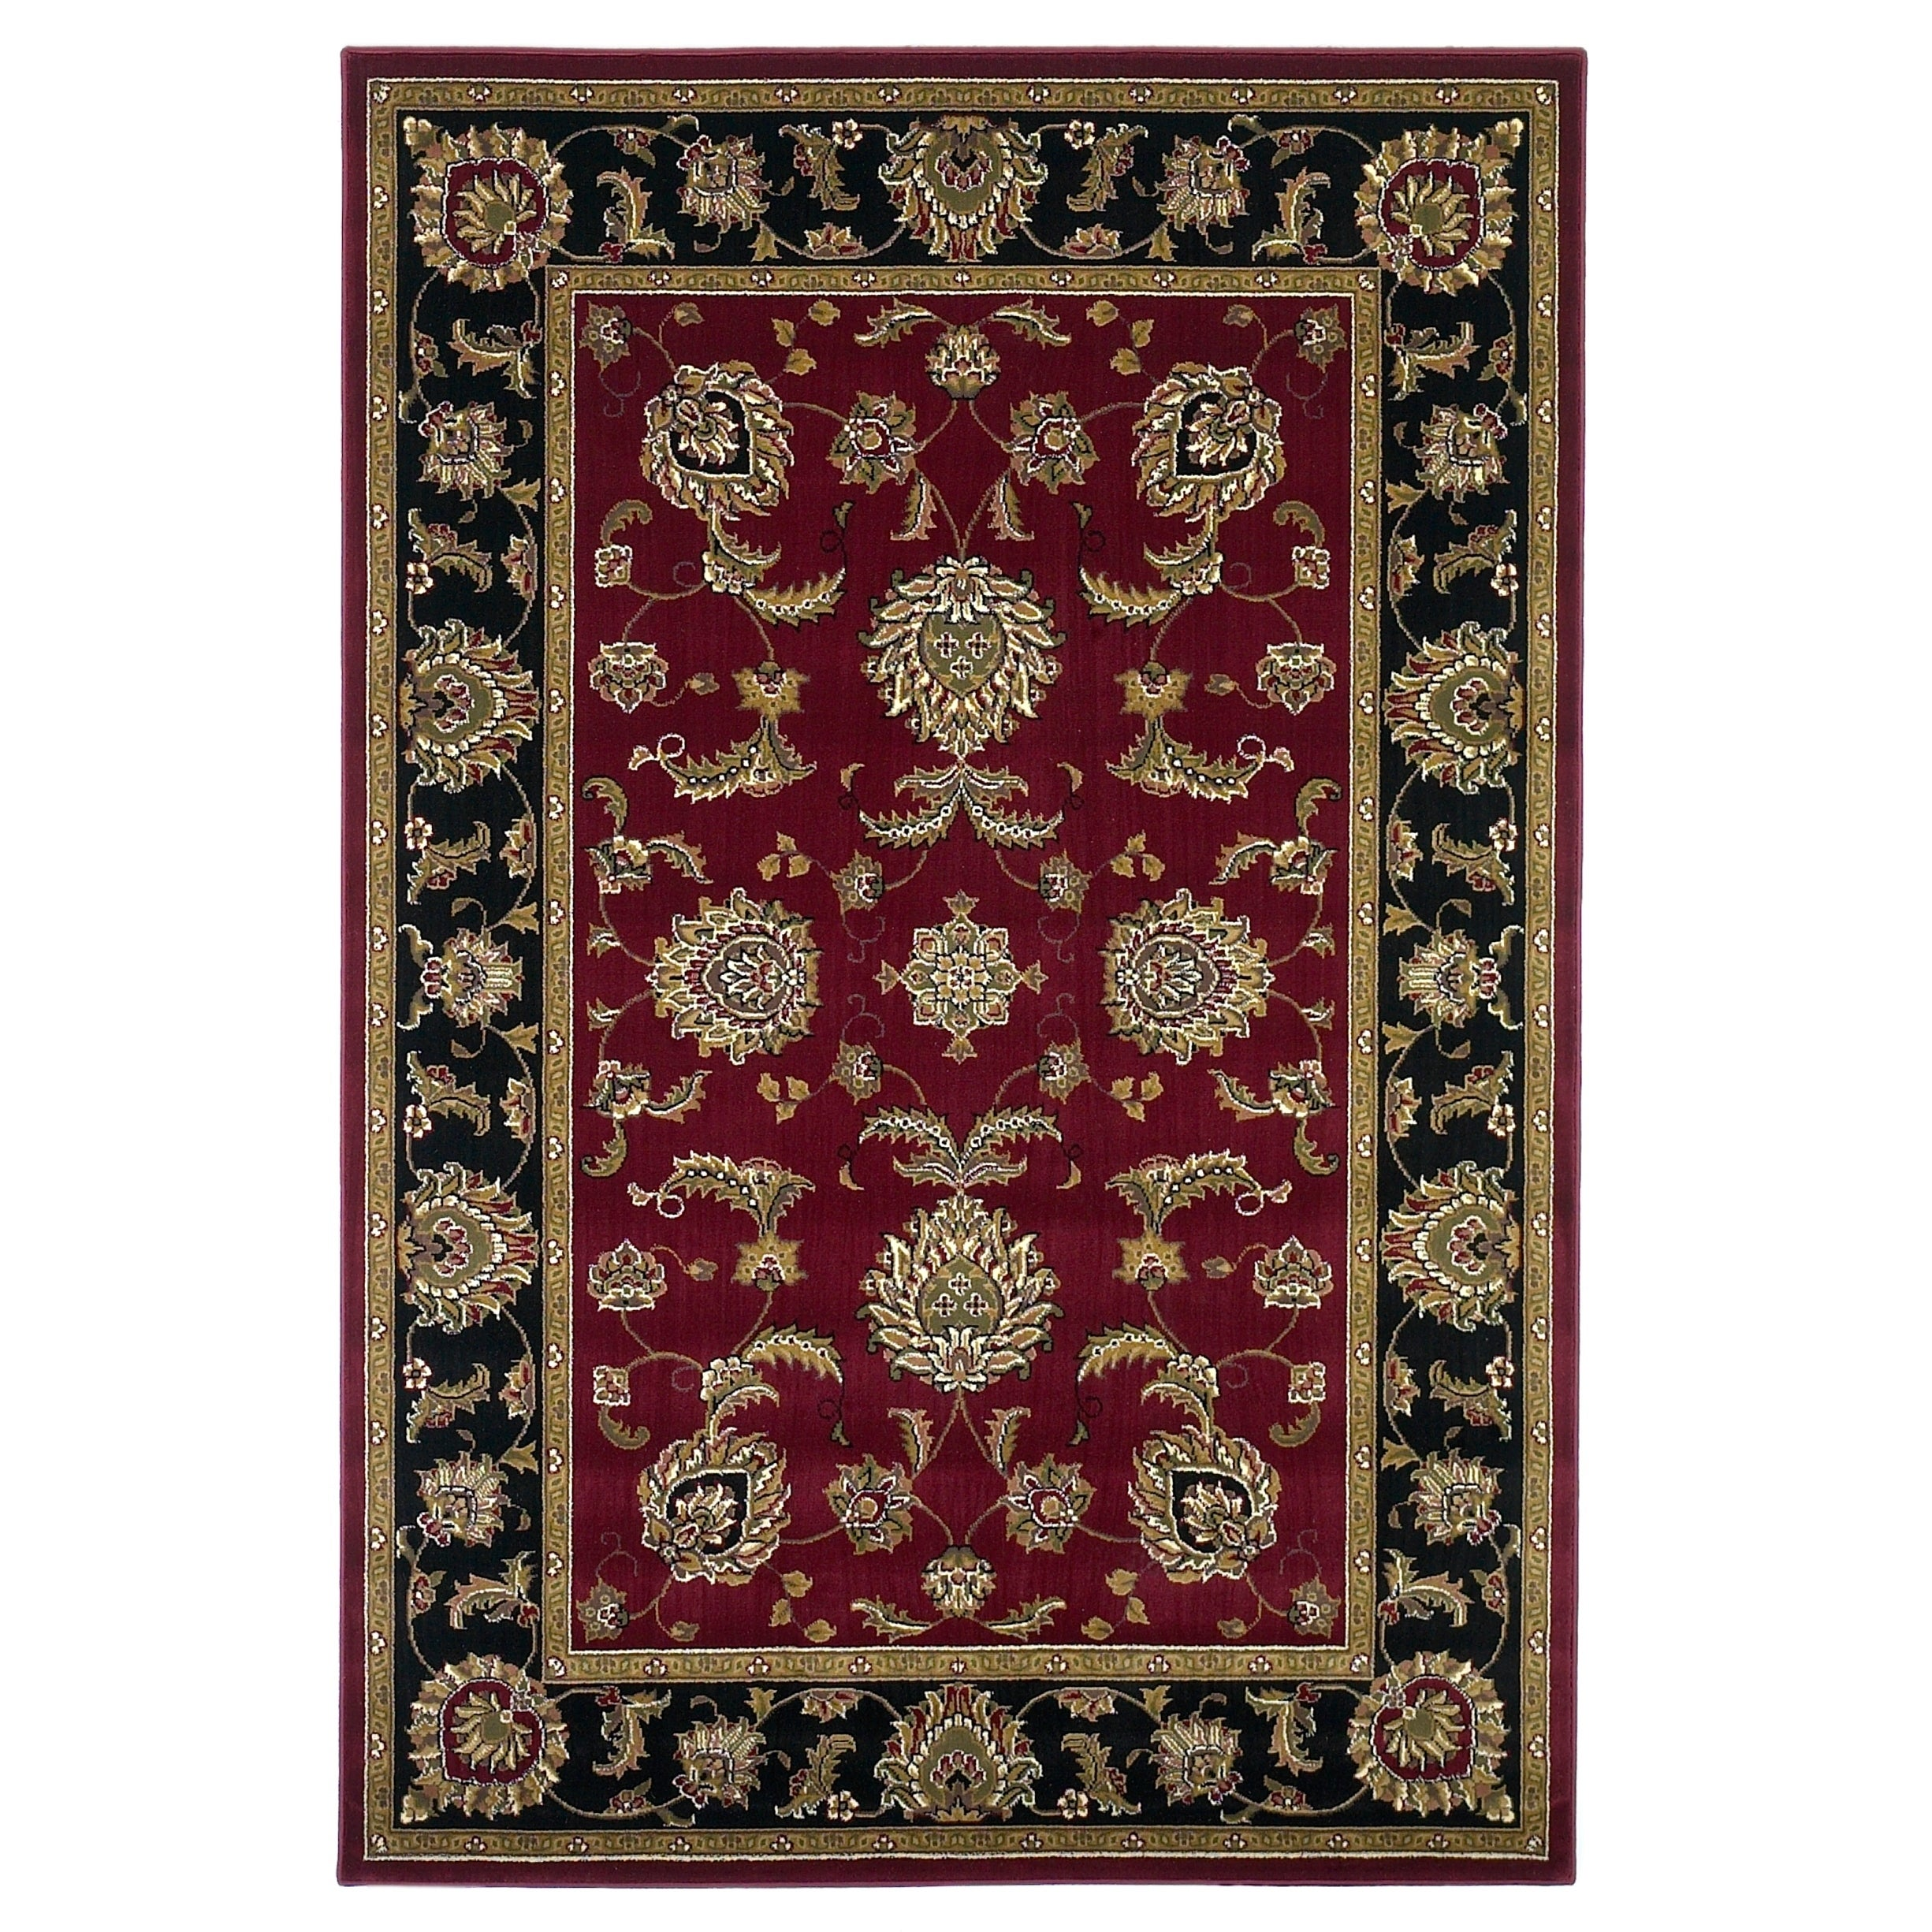 Copper Grove Veit Red Black Traditional Area Rug Overstock 26638096